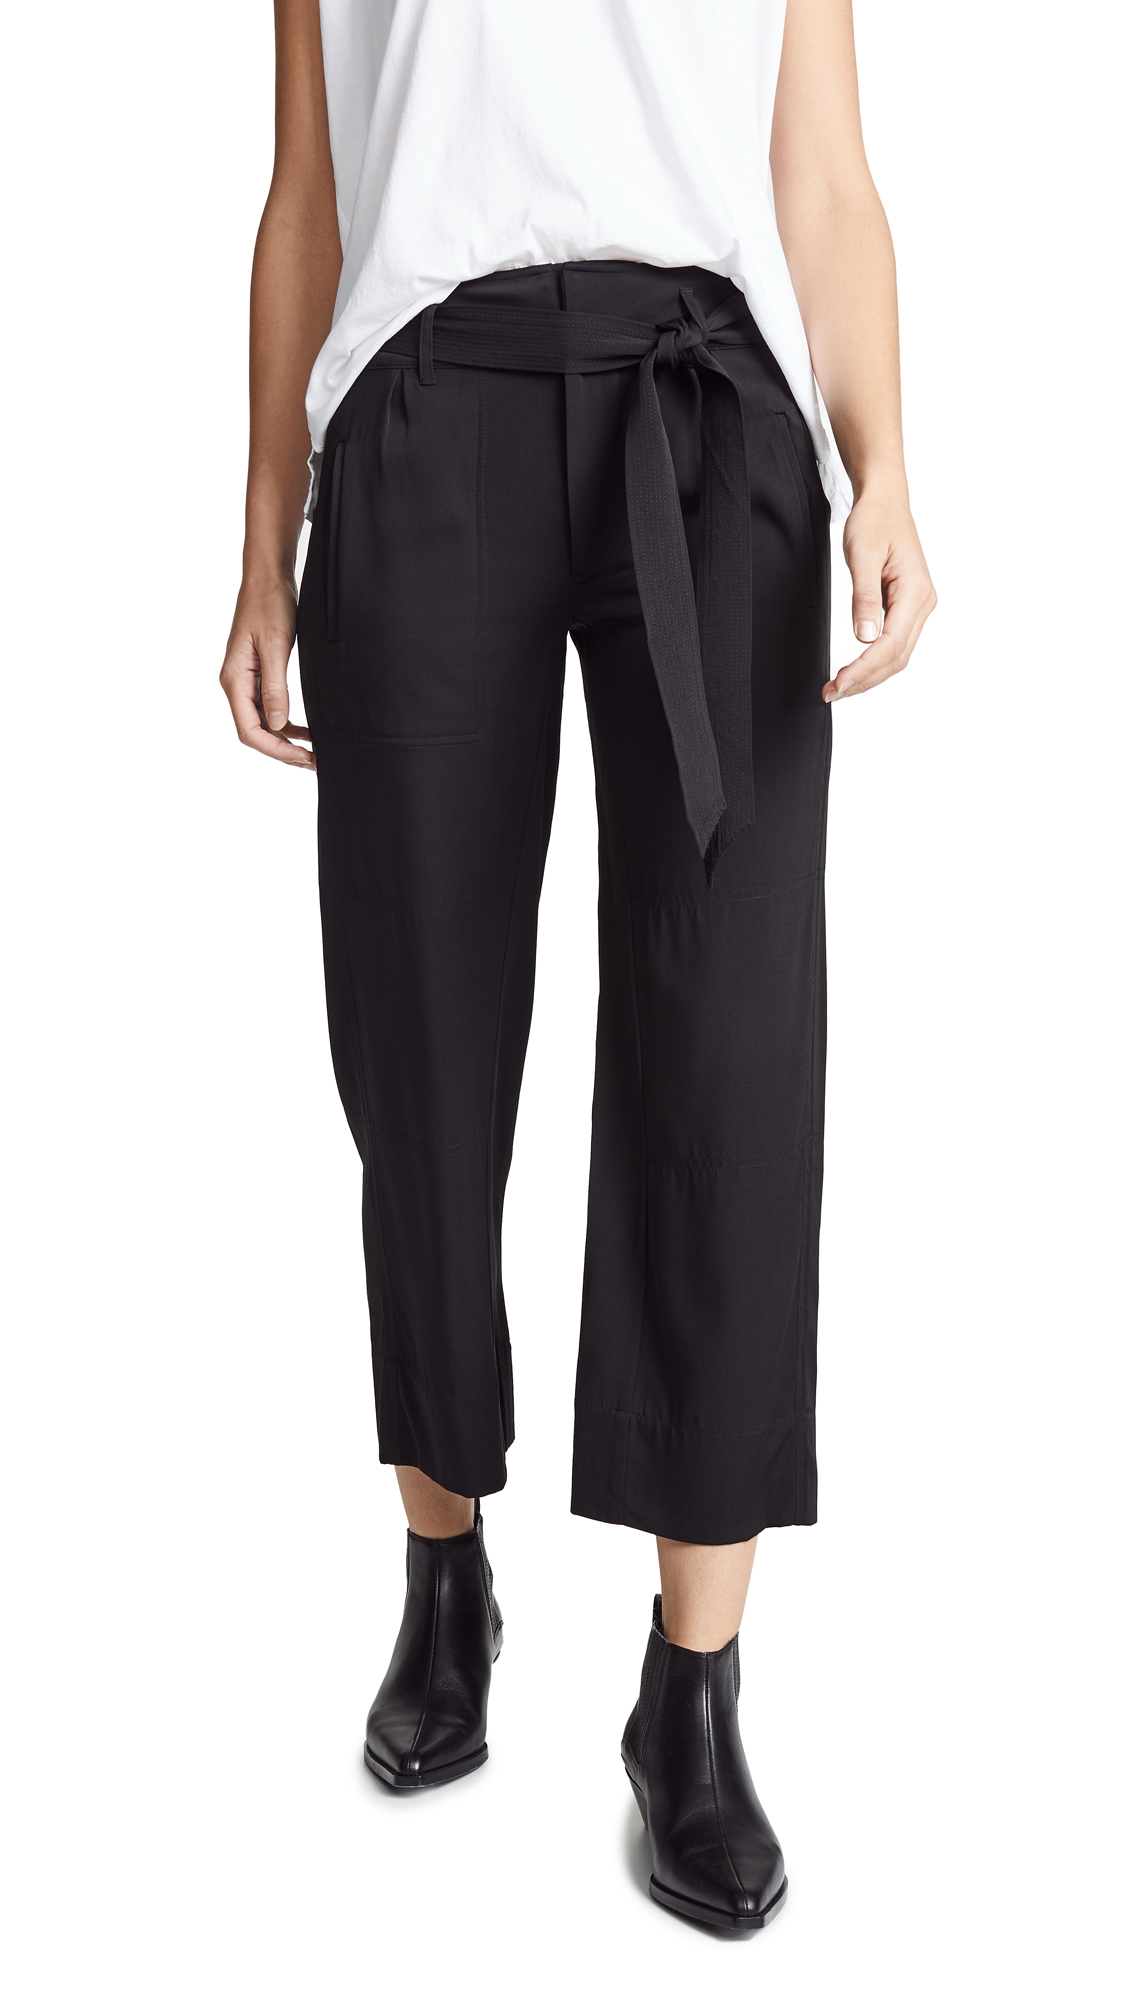 AYR The Mirage Pants in Black